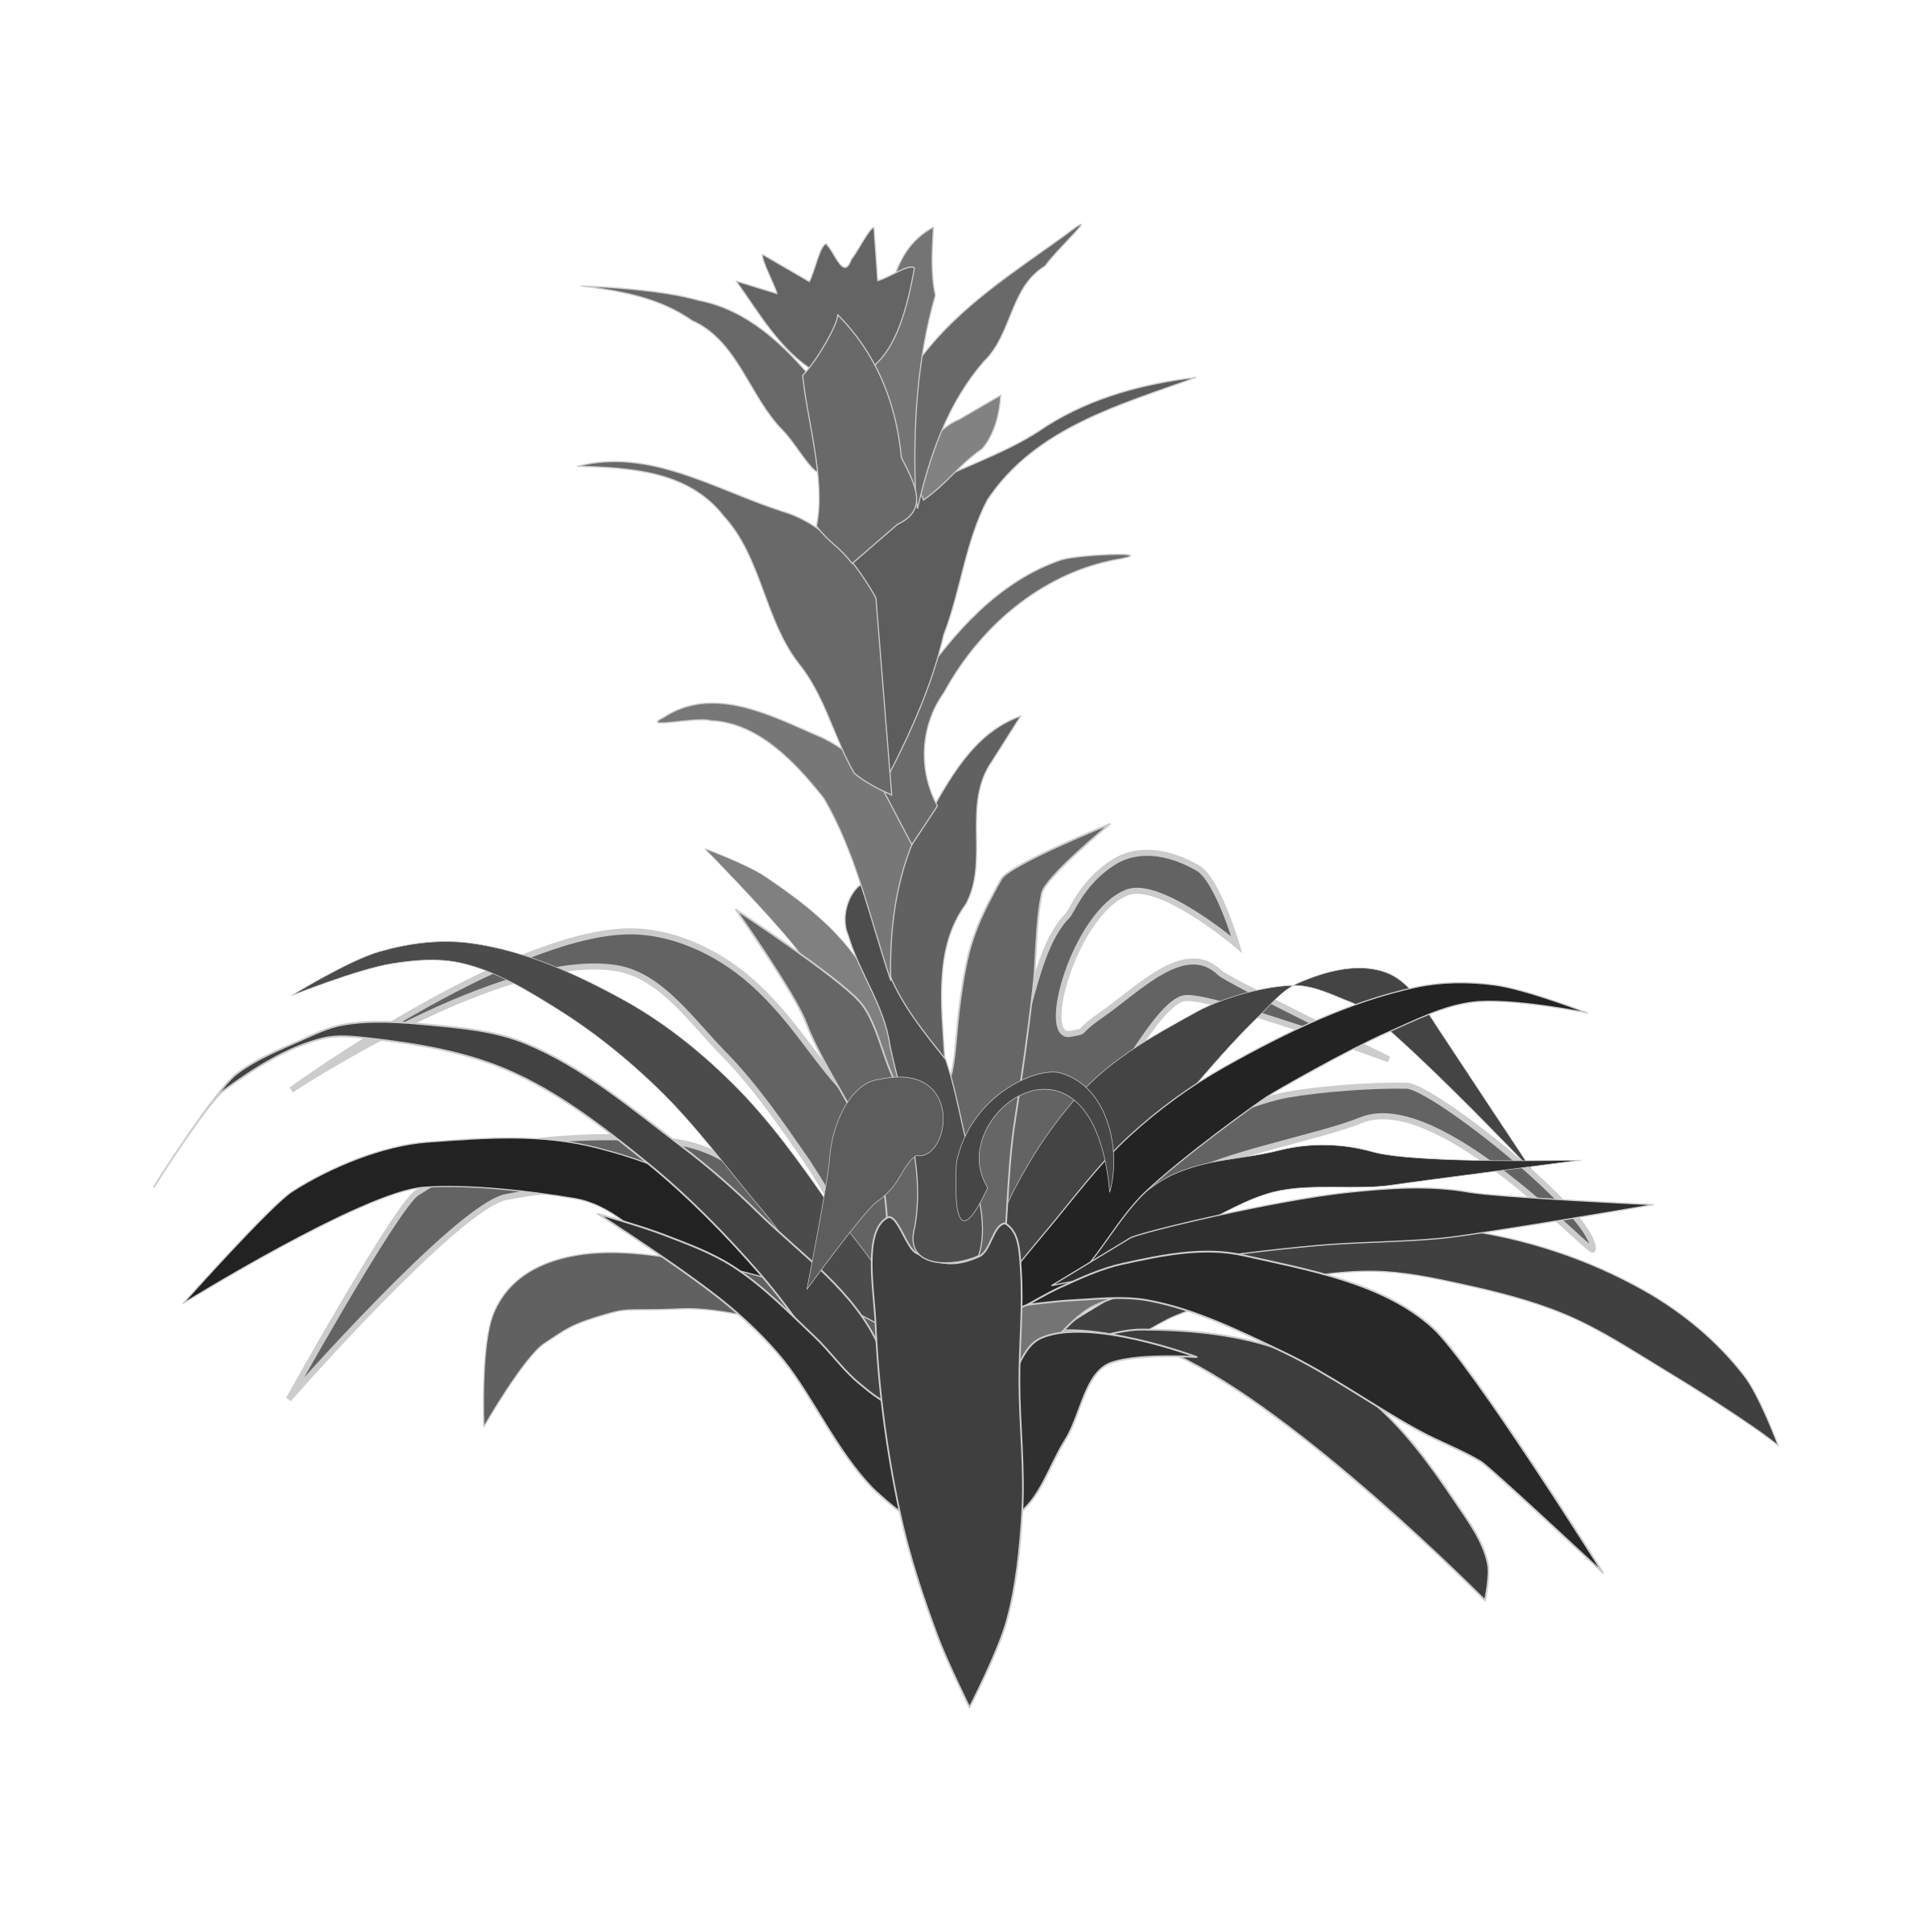 Bromelia clipart #5, Download drawings